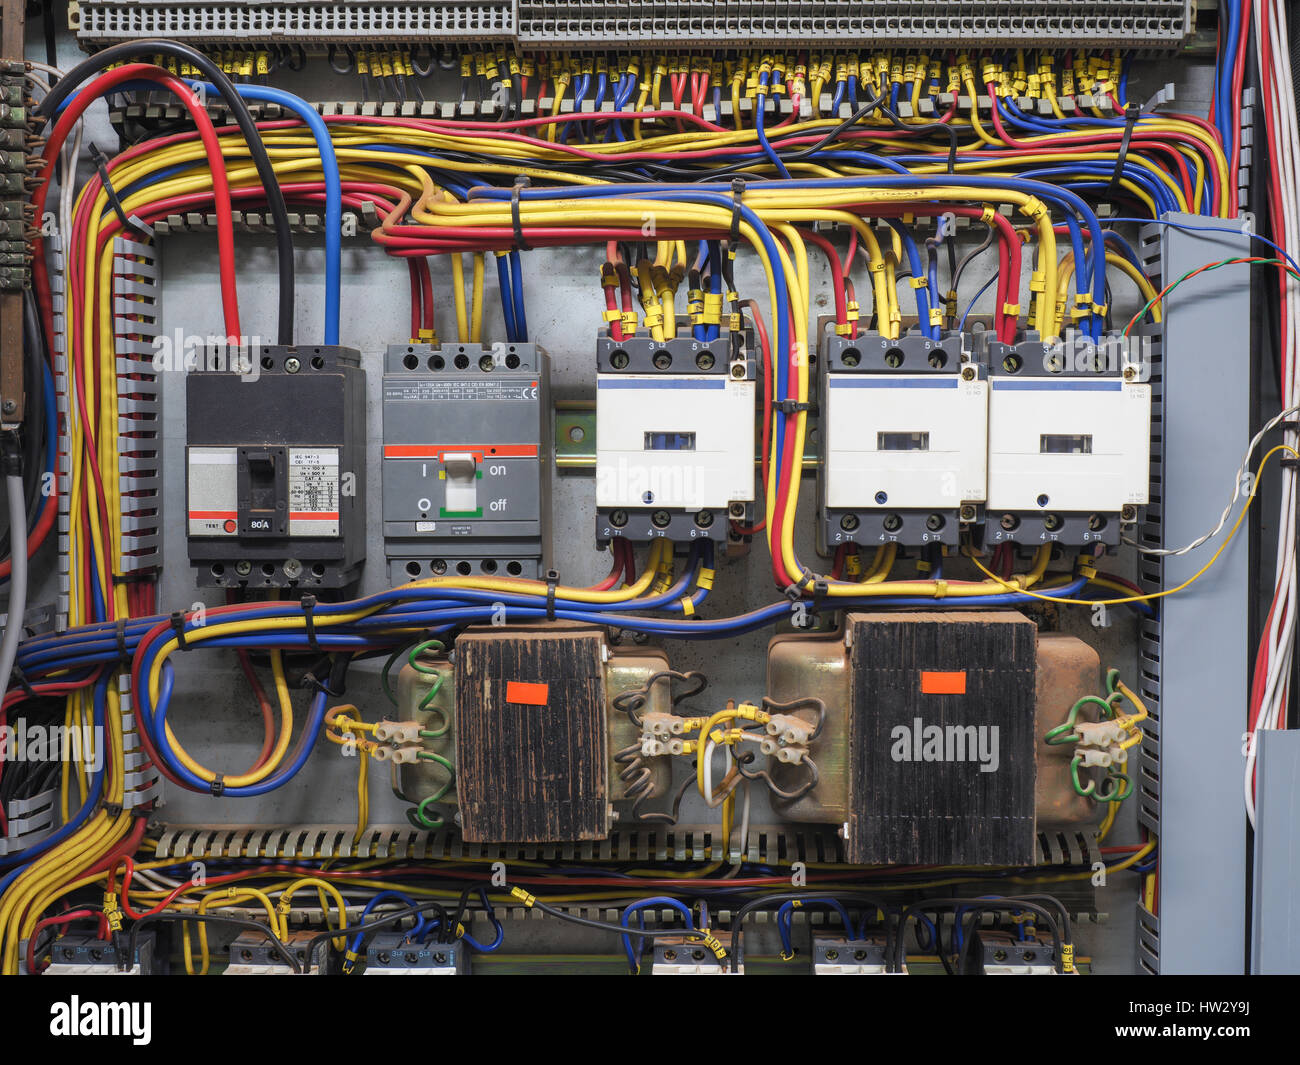 Electrical Cubicle Panel Board Stock Photos & Electrical Cubicle ...